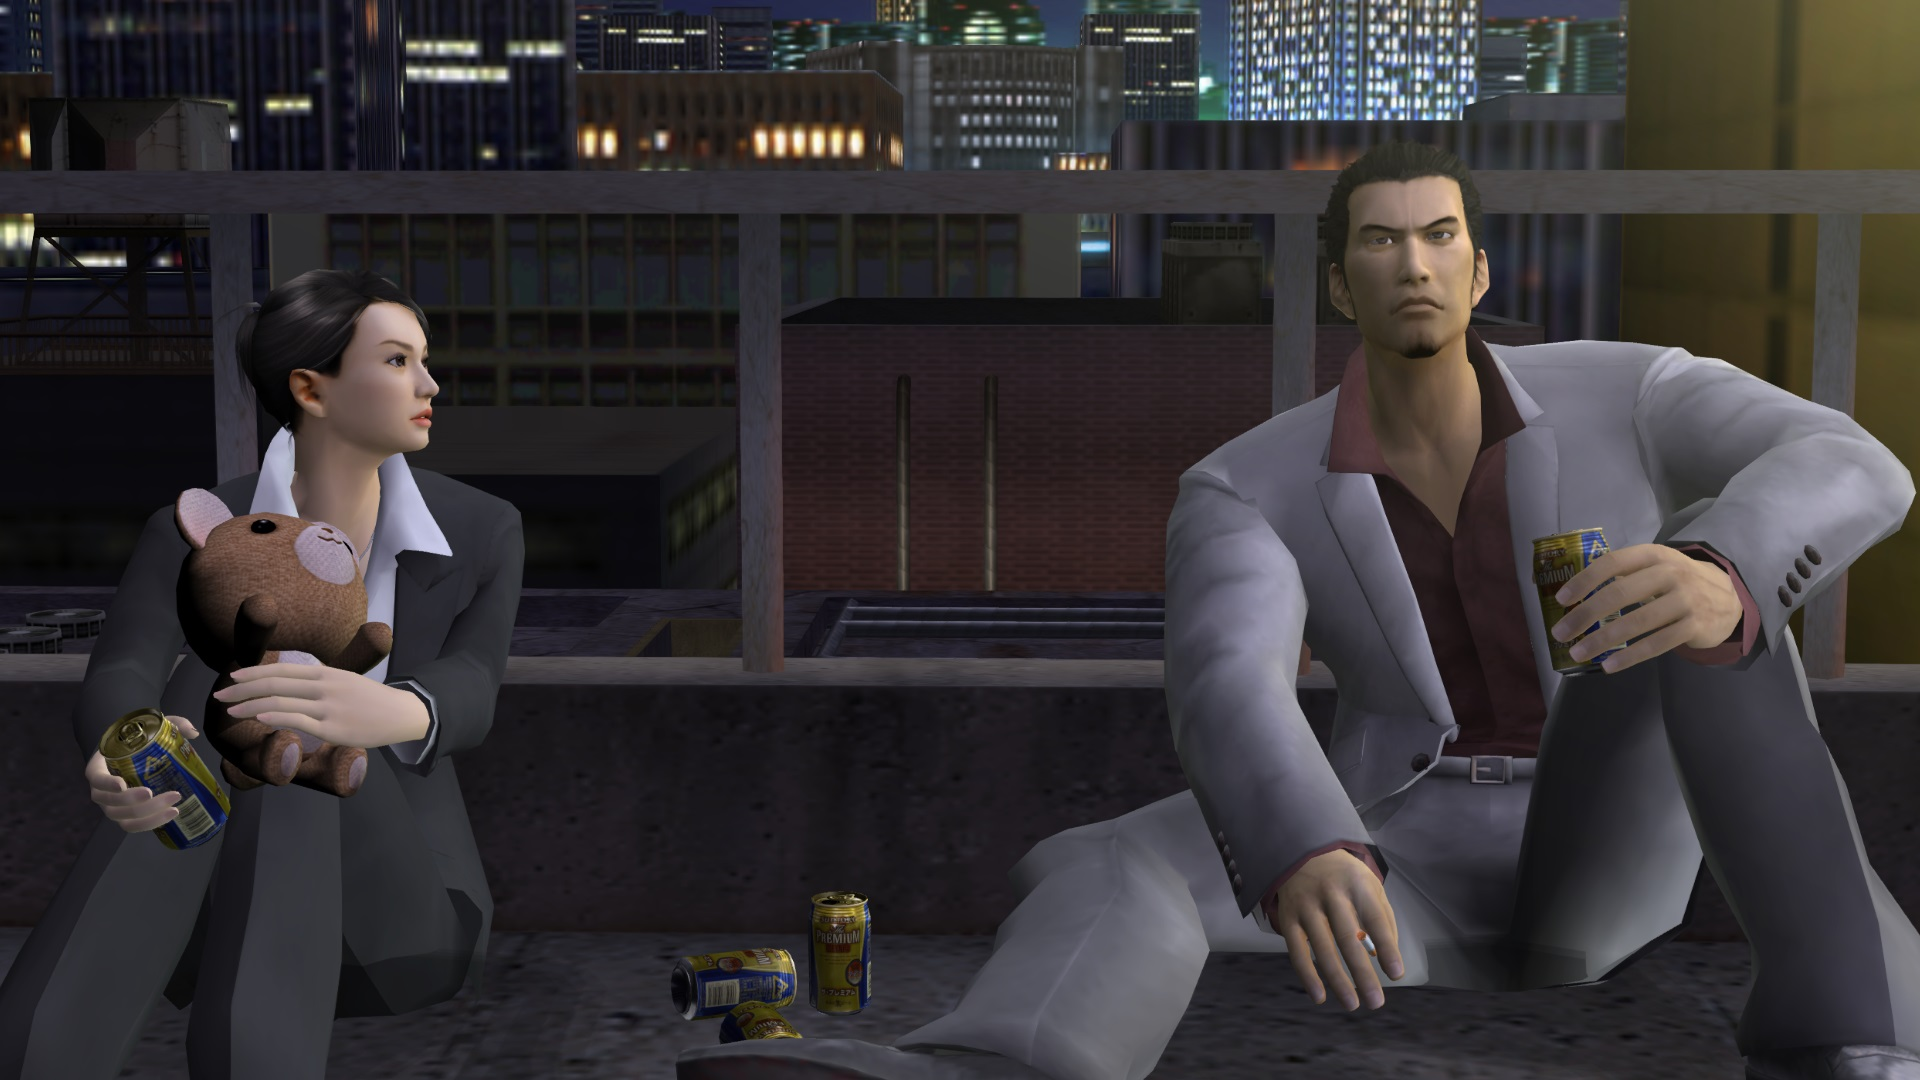 Sega Announces Yakuza Kiwami 2 for PS4